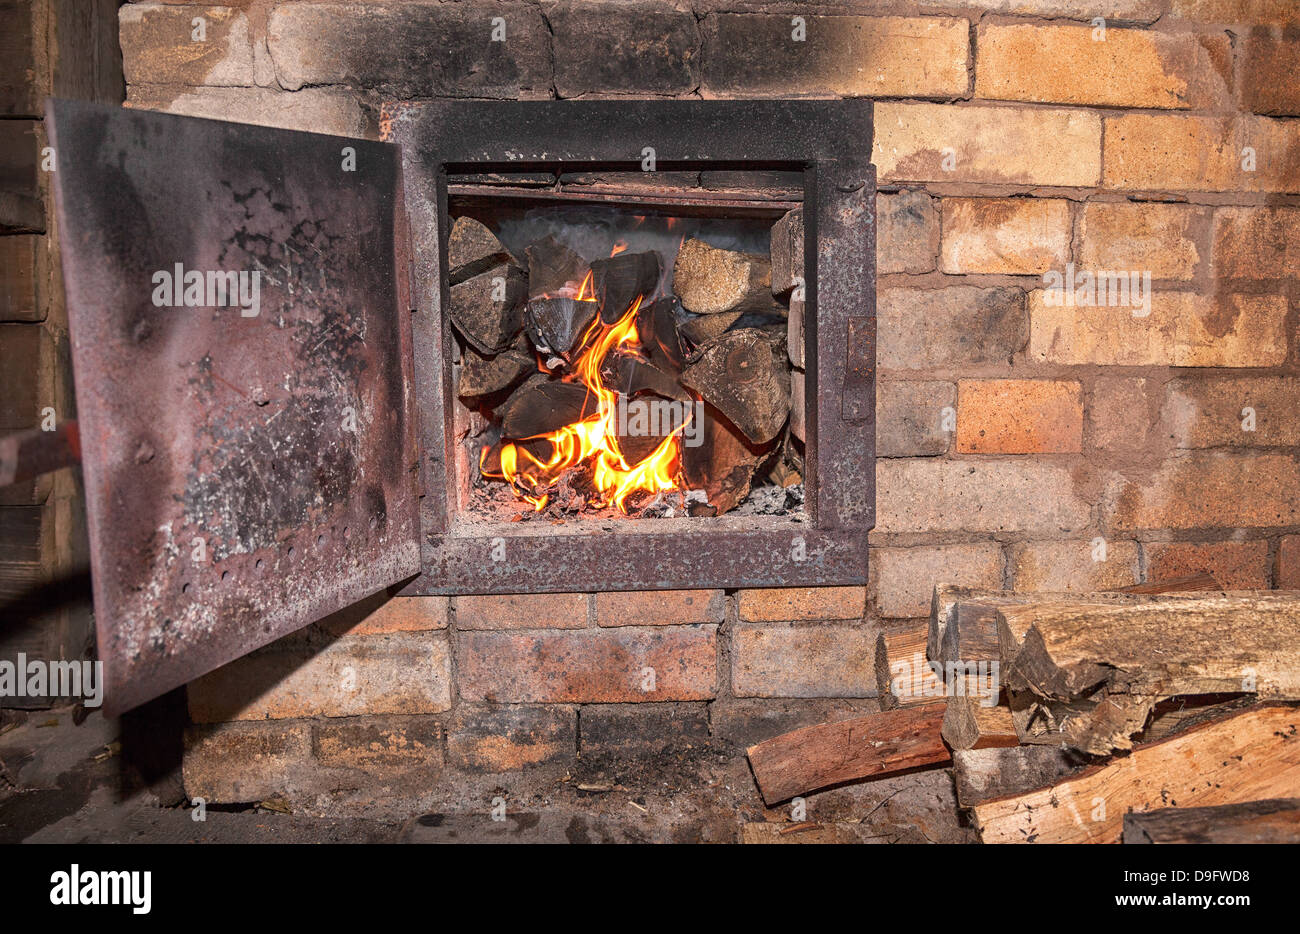 Old stove with open door and burning the wood - Stock Image